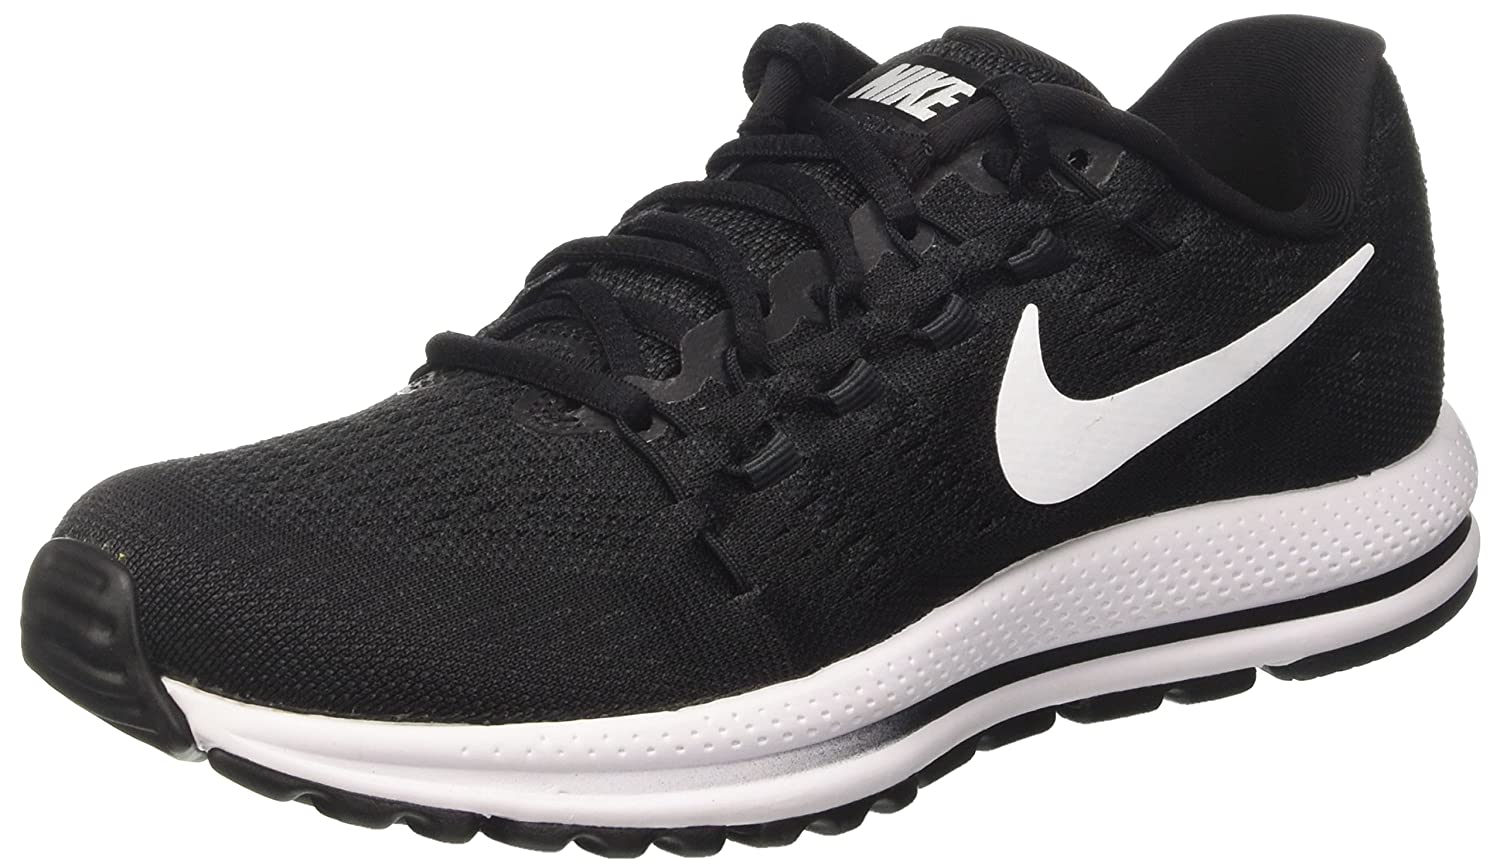 NIKE Men's Air Zoom Vomero 12 Running Shoe B01N0W11AB 11 B(M) US|Black/Anthracite/White